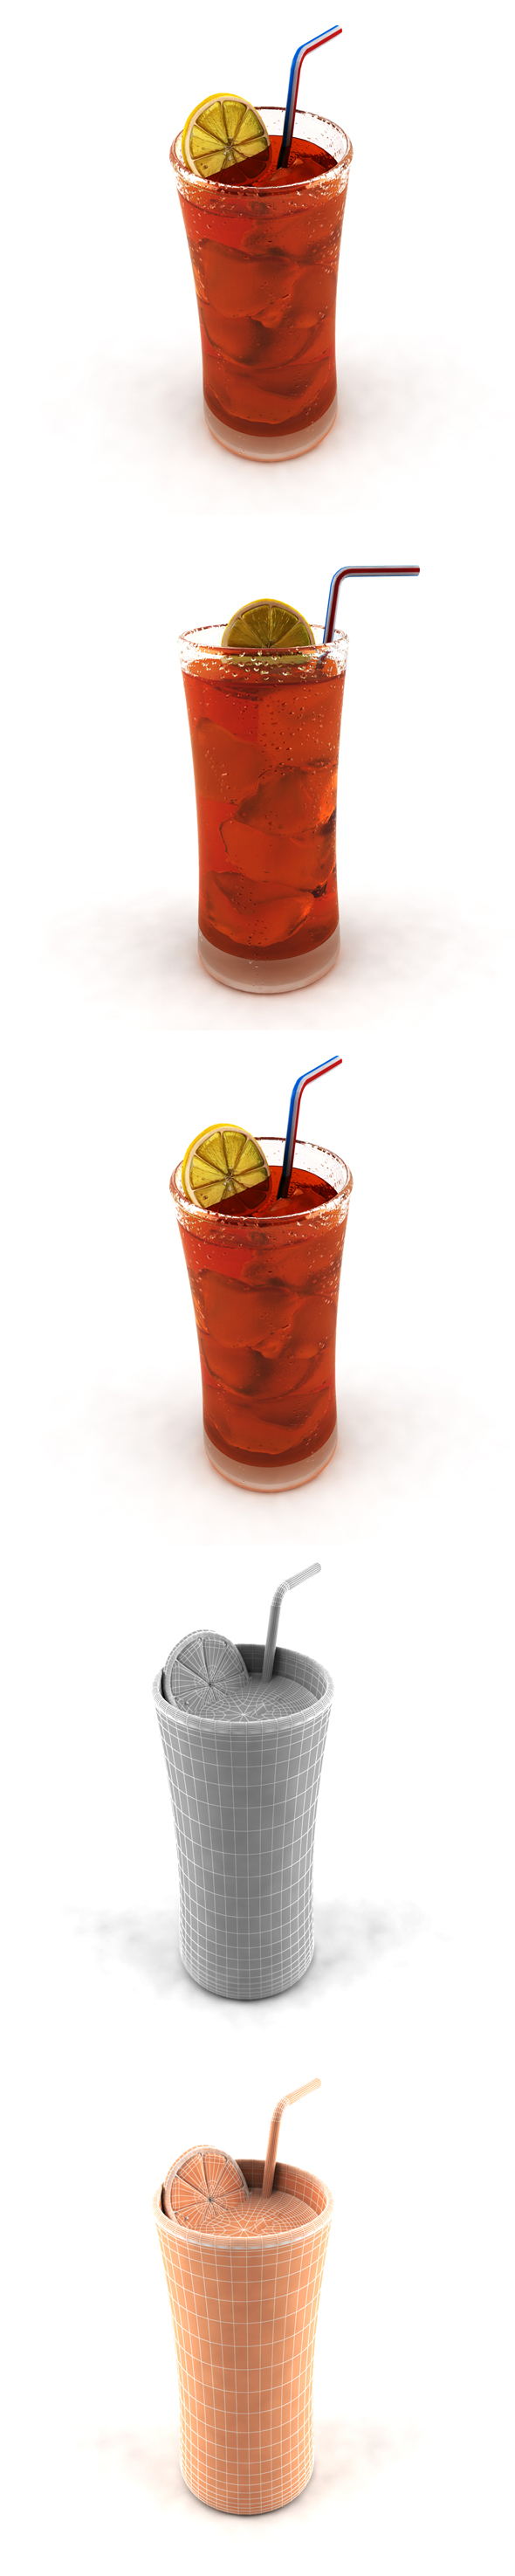 Glass of Ice Tea with Lemon - 3DOcean Item for Sale